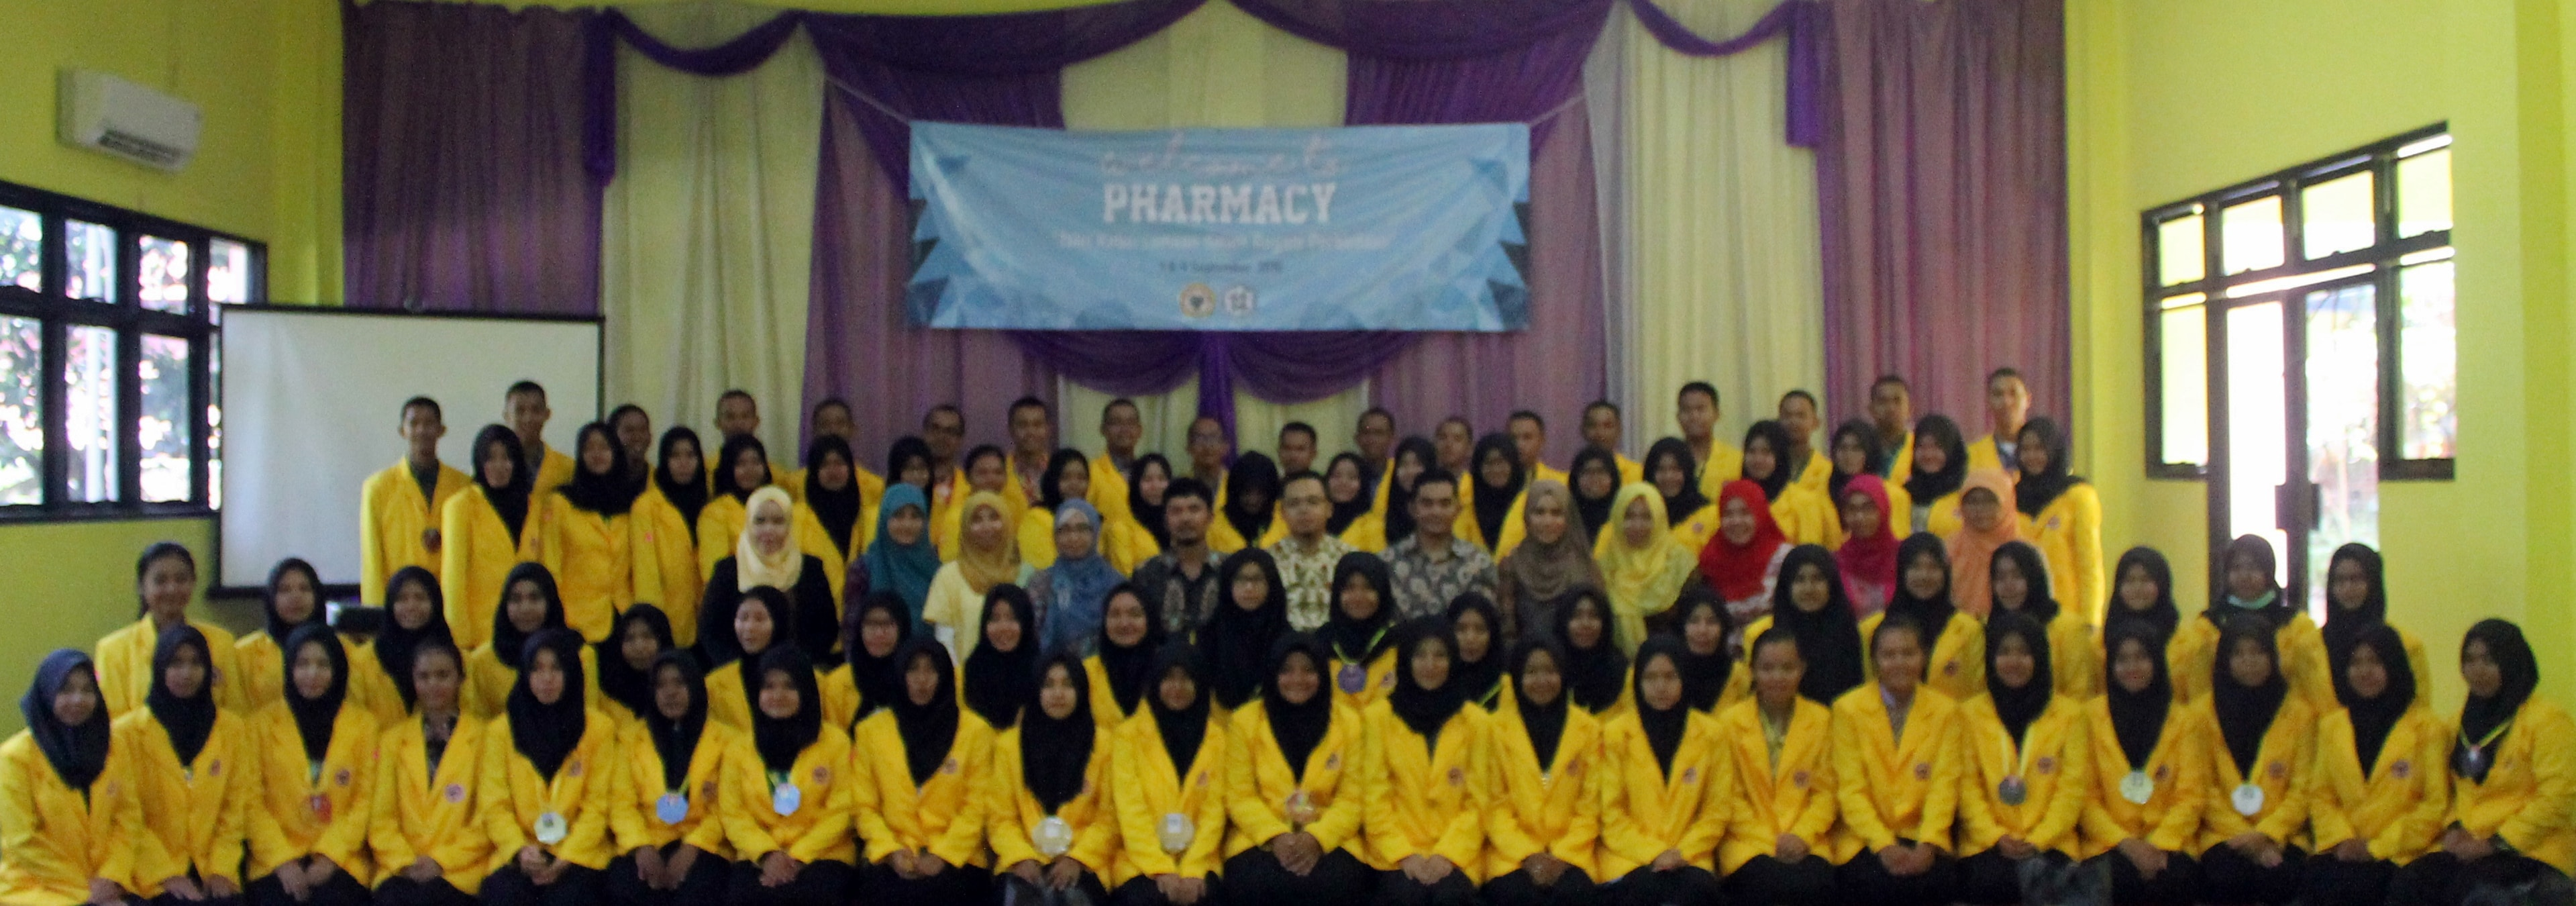 Welcome to Pharmacy